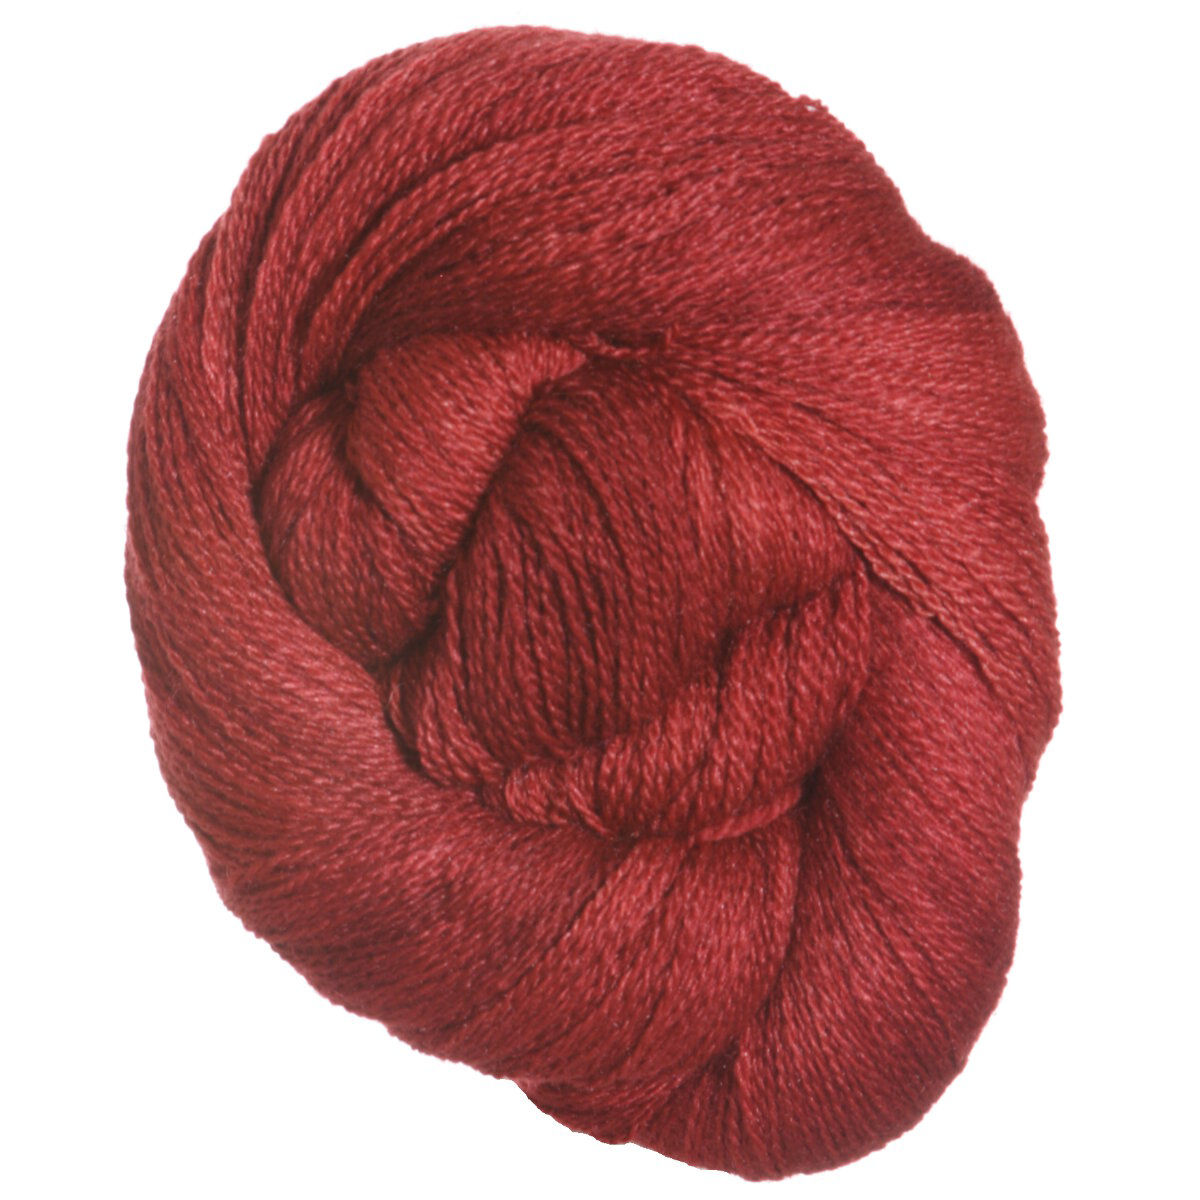 Knitting With Two Colors Carrying Yarn : Swans island natural colors lace yarn currant at jimmy